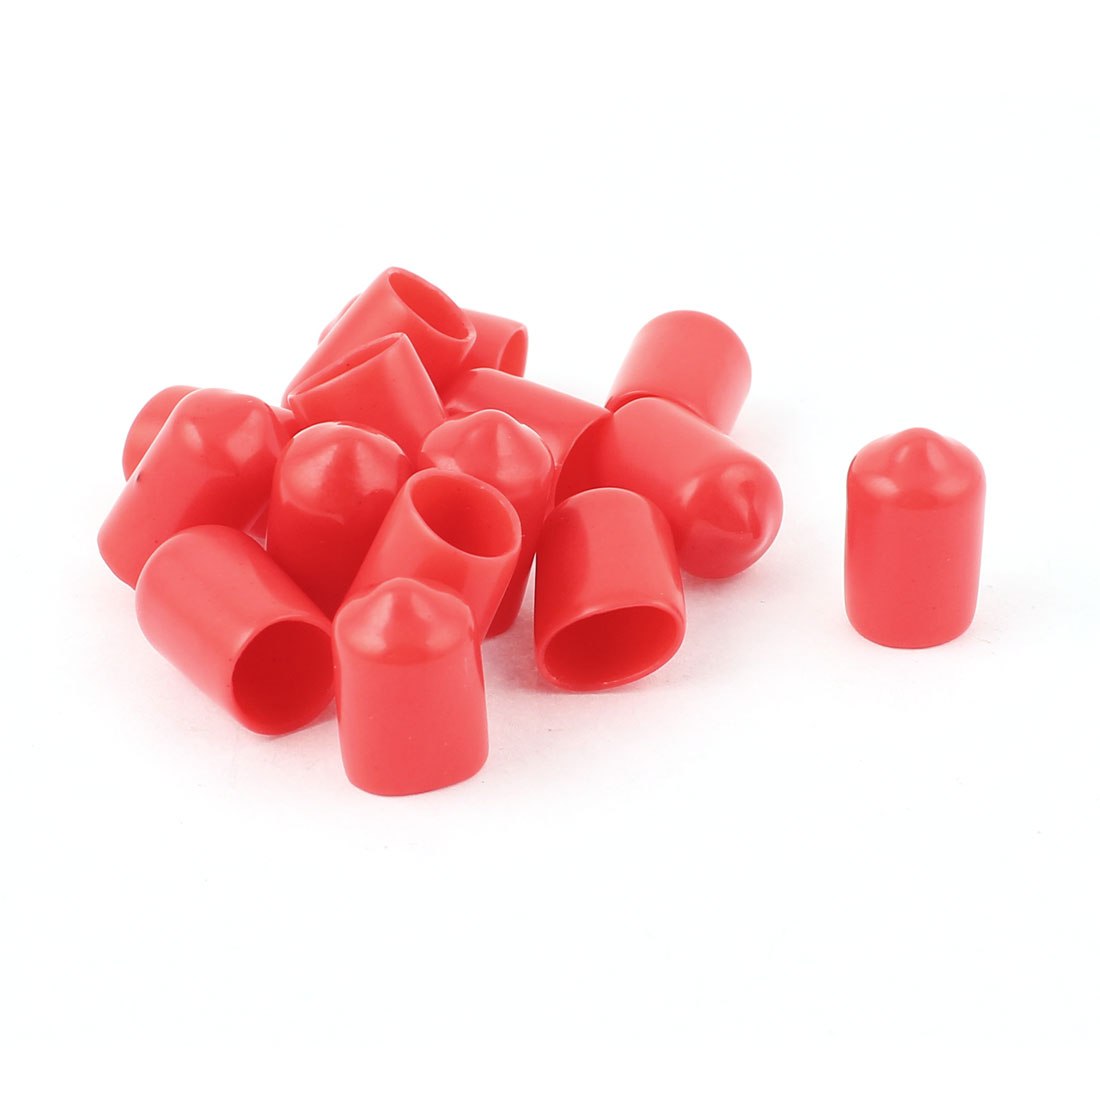 15 Pcs 18mm Height 9mm Inner Dia Round Tip Red PVC Insulated End Caps